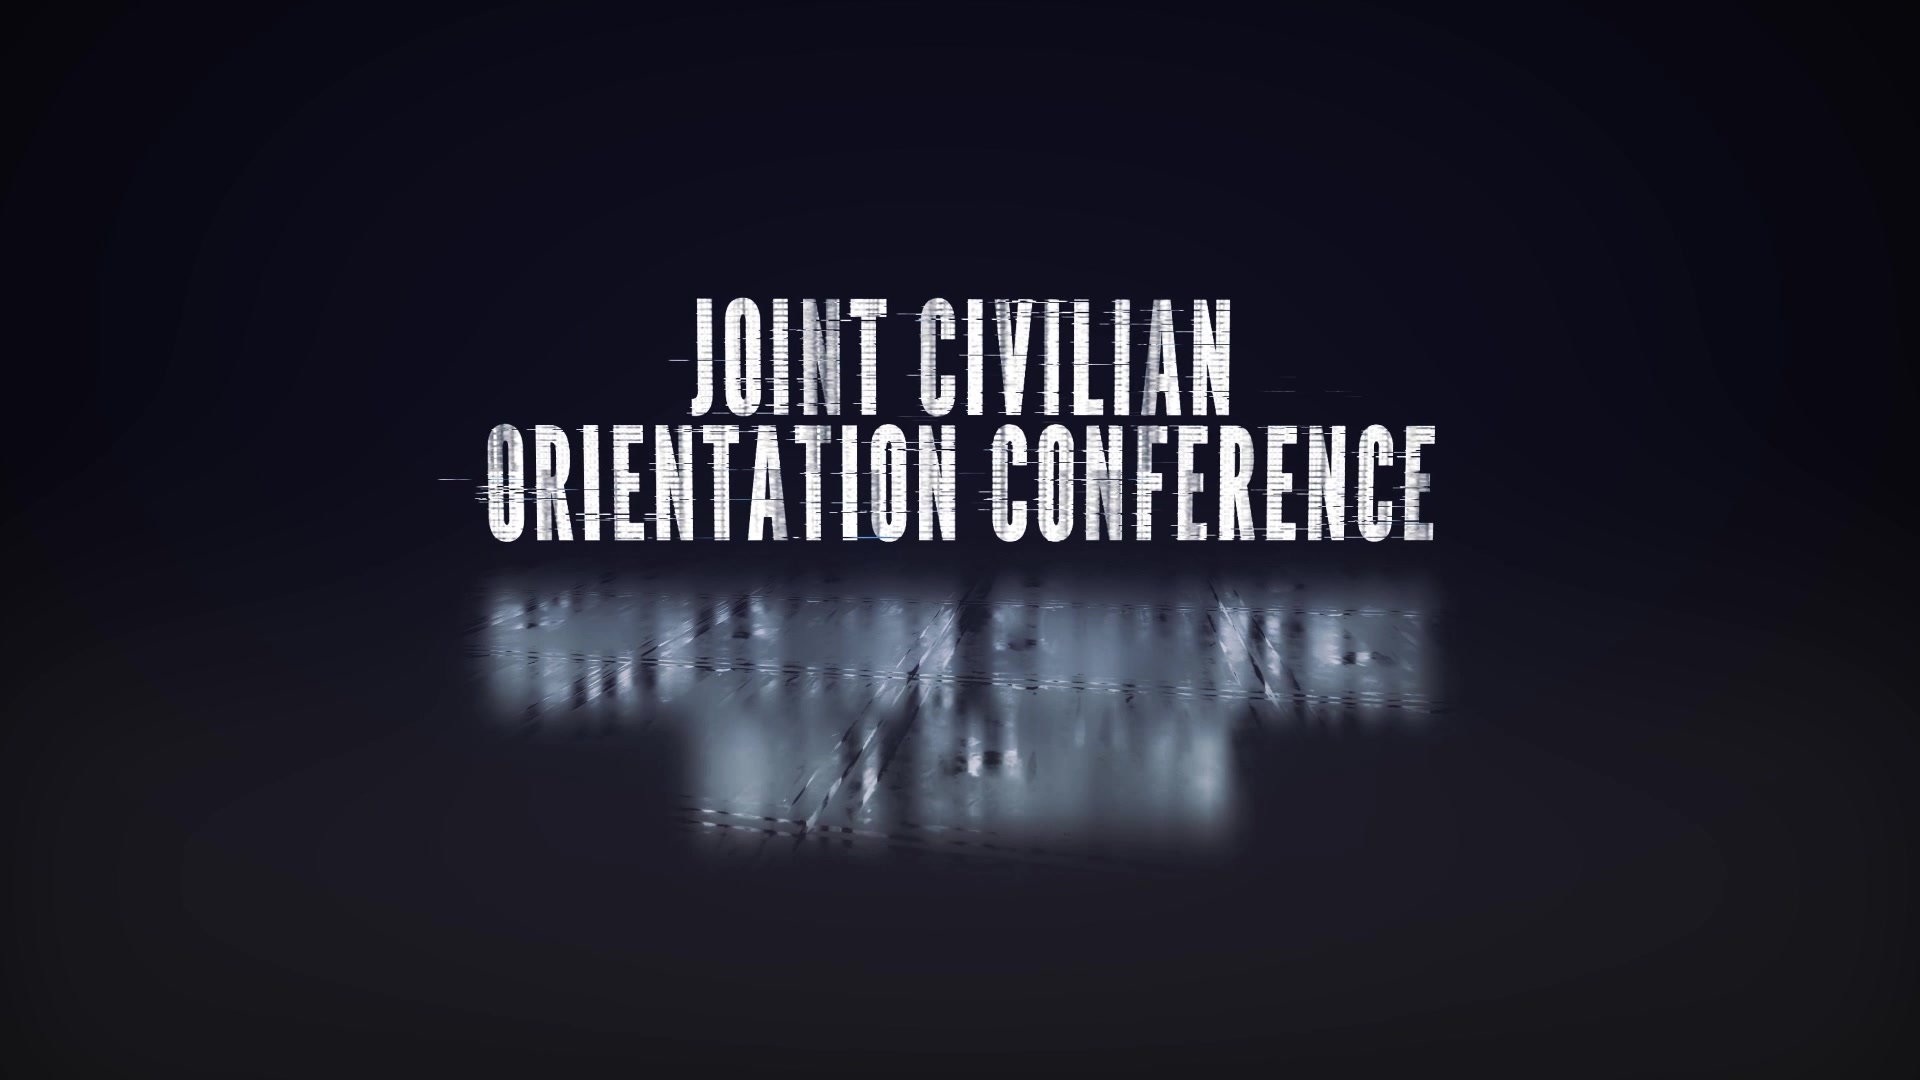 Civilians attend a Joint Civilian Orientation Conference  to learn about the armed forces through a variety of experiences, including a mini-boot camp and a rifle range, and discussions with service members. The program is the oldest and most prestigious in the Defense Department and is the only outreach program sponsored by the secretary of defense. The conferences are held annually and are designed to increase public understanding of national defense by enabling American business and community leaders to directly observe and engage with the U.S. military.